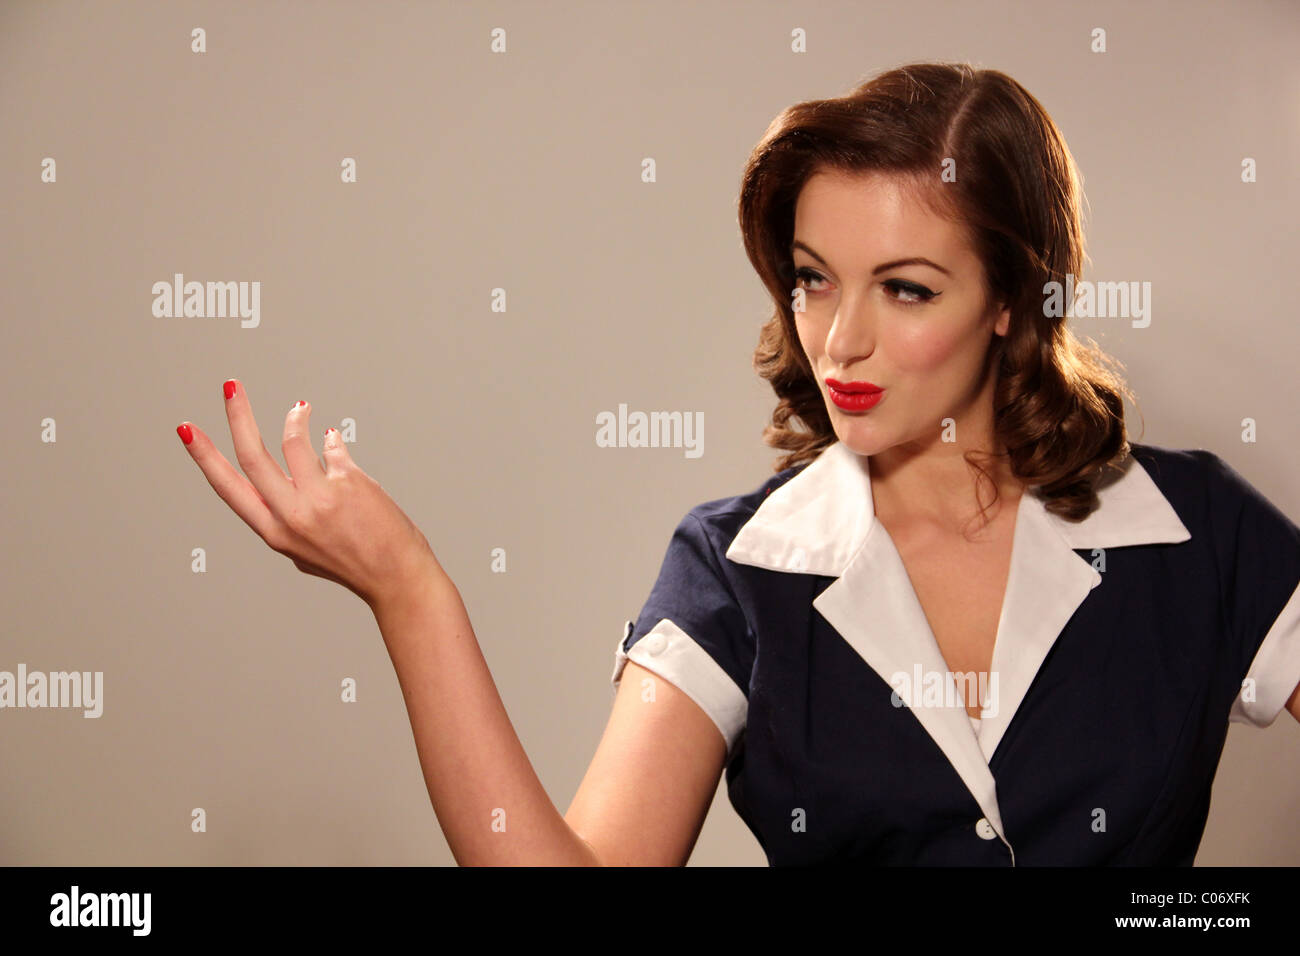 Woman in 1950s clothing pointing to an imaginary object - Stock Image